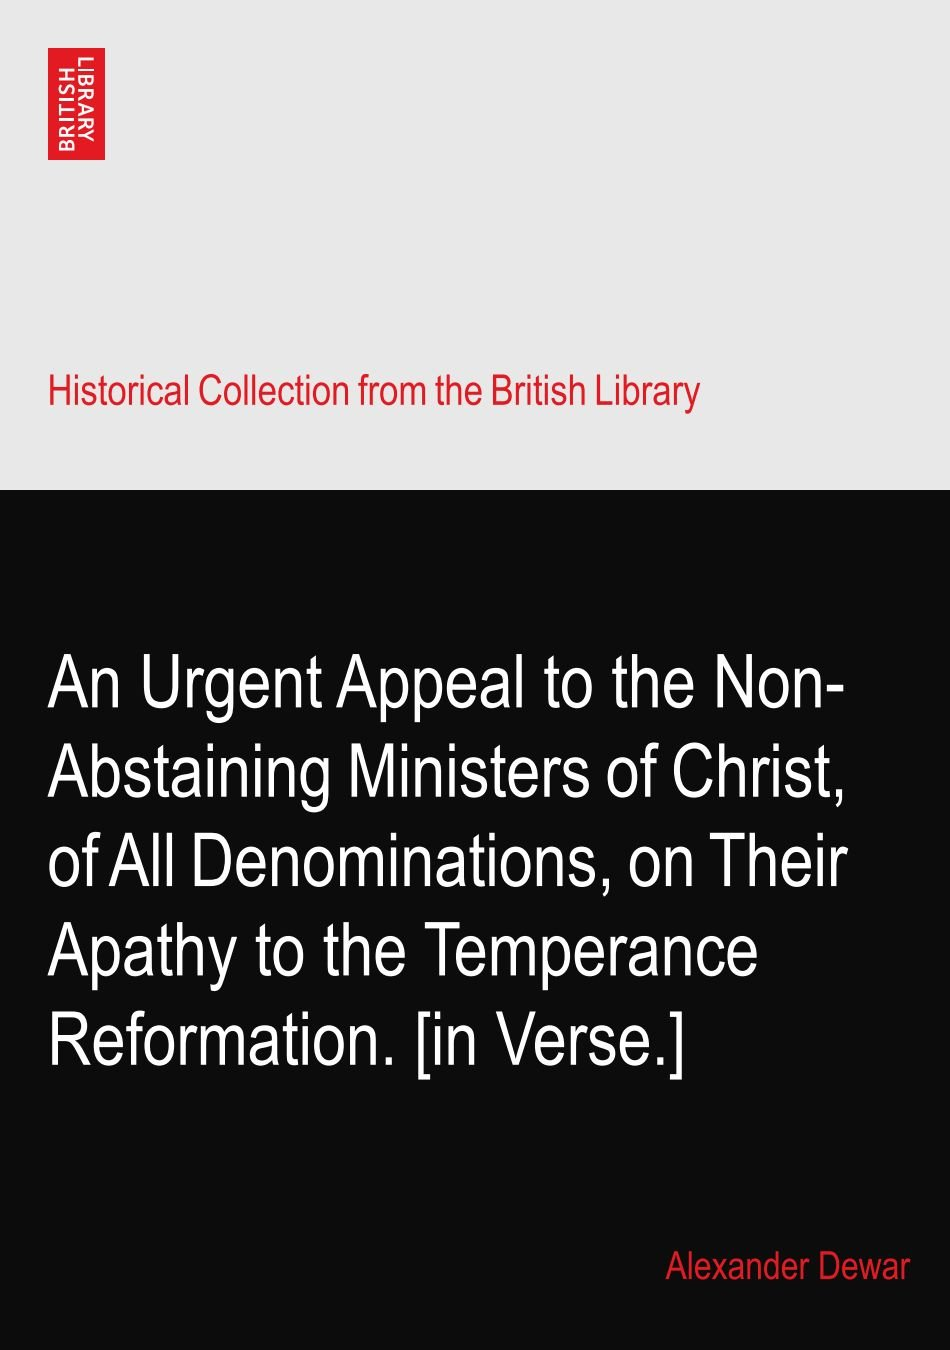 Download An Urgent Appeal to the Non-Abstaining Ministers of Christ, of All Denominations, on Their Apathy to the Temperance Reformation. [in Verse.] ebook